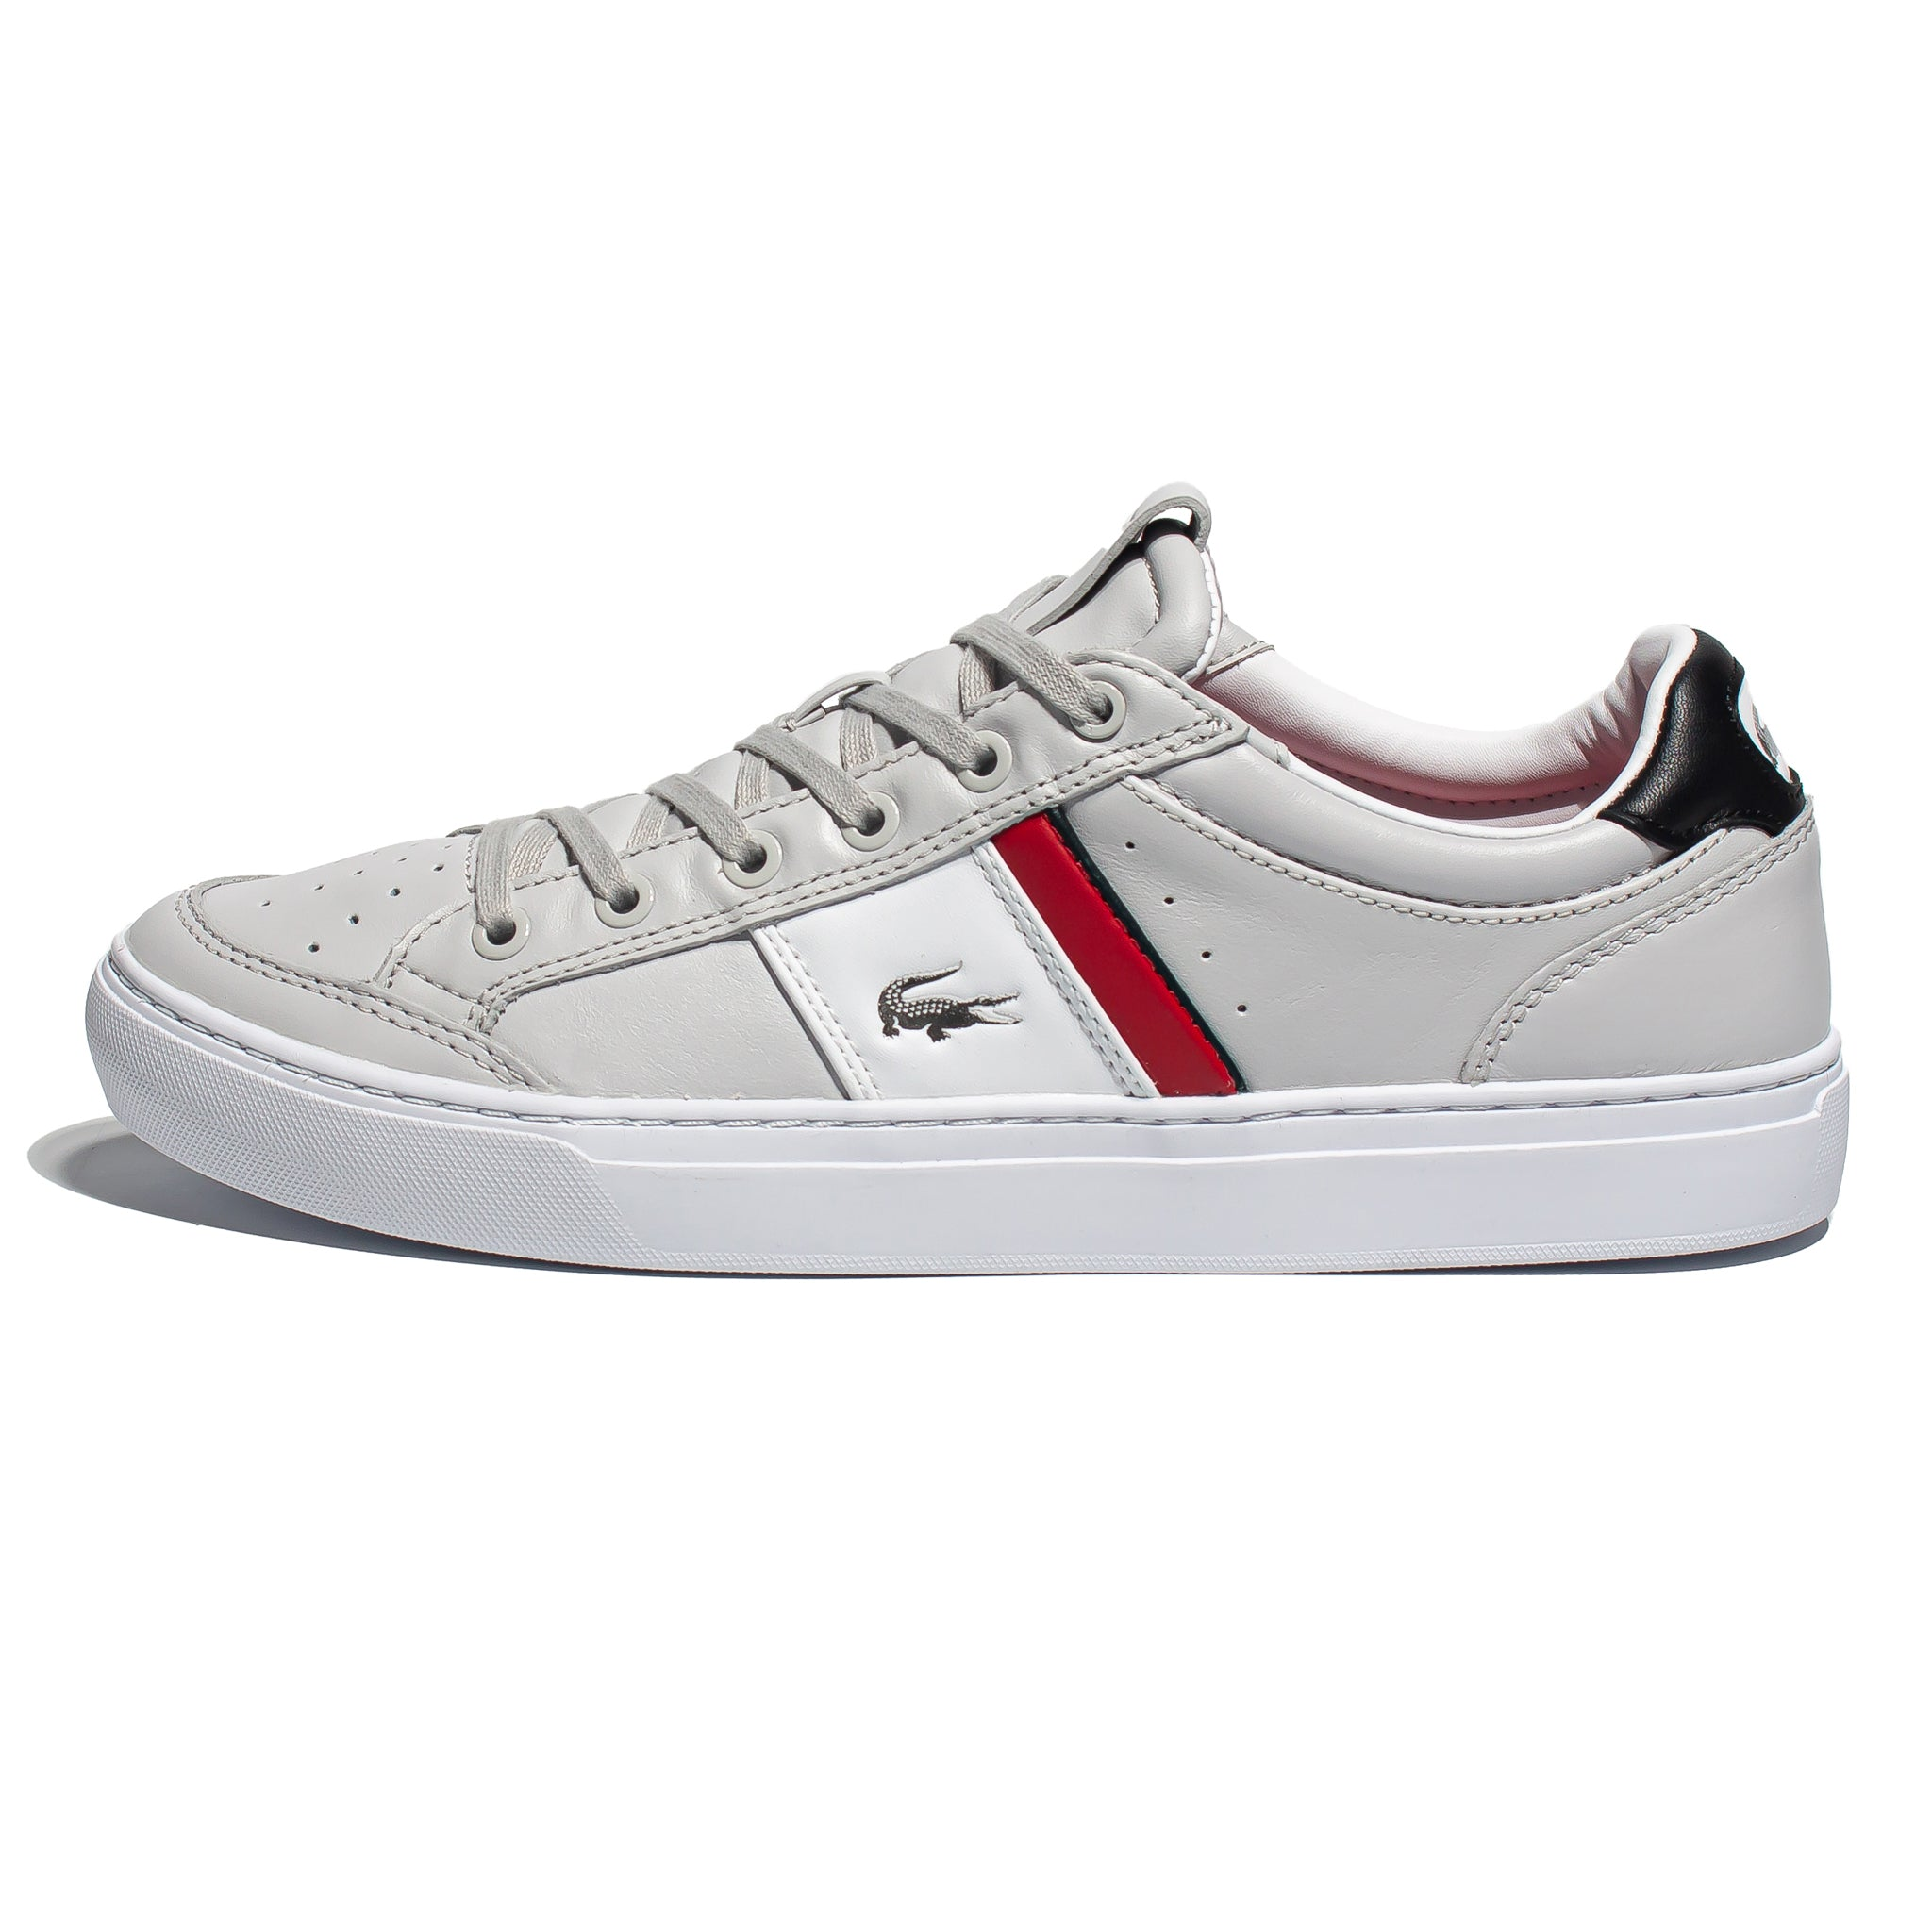 Lacoste Courtline 120 Grey/White